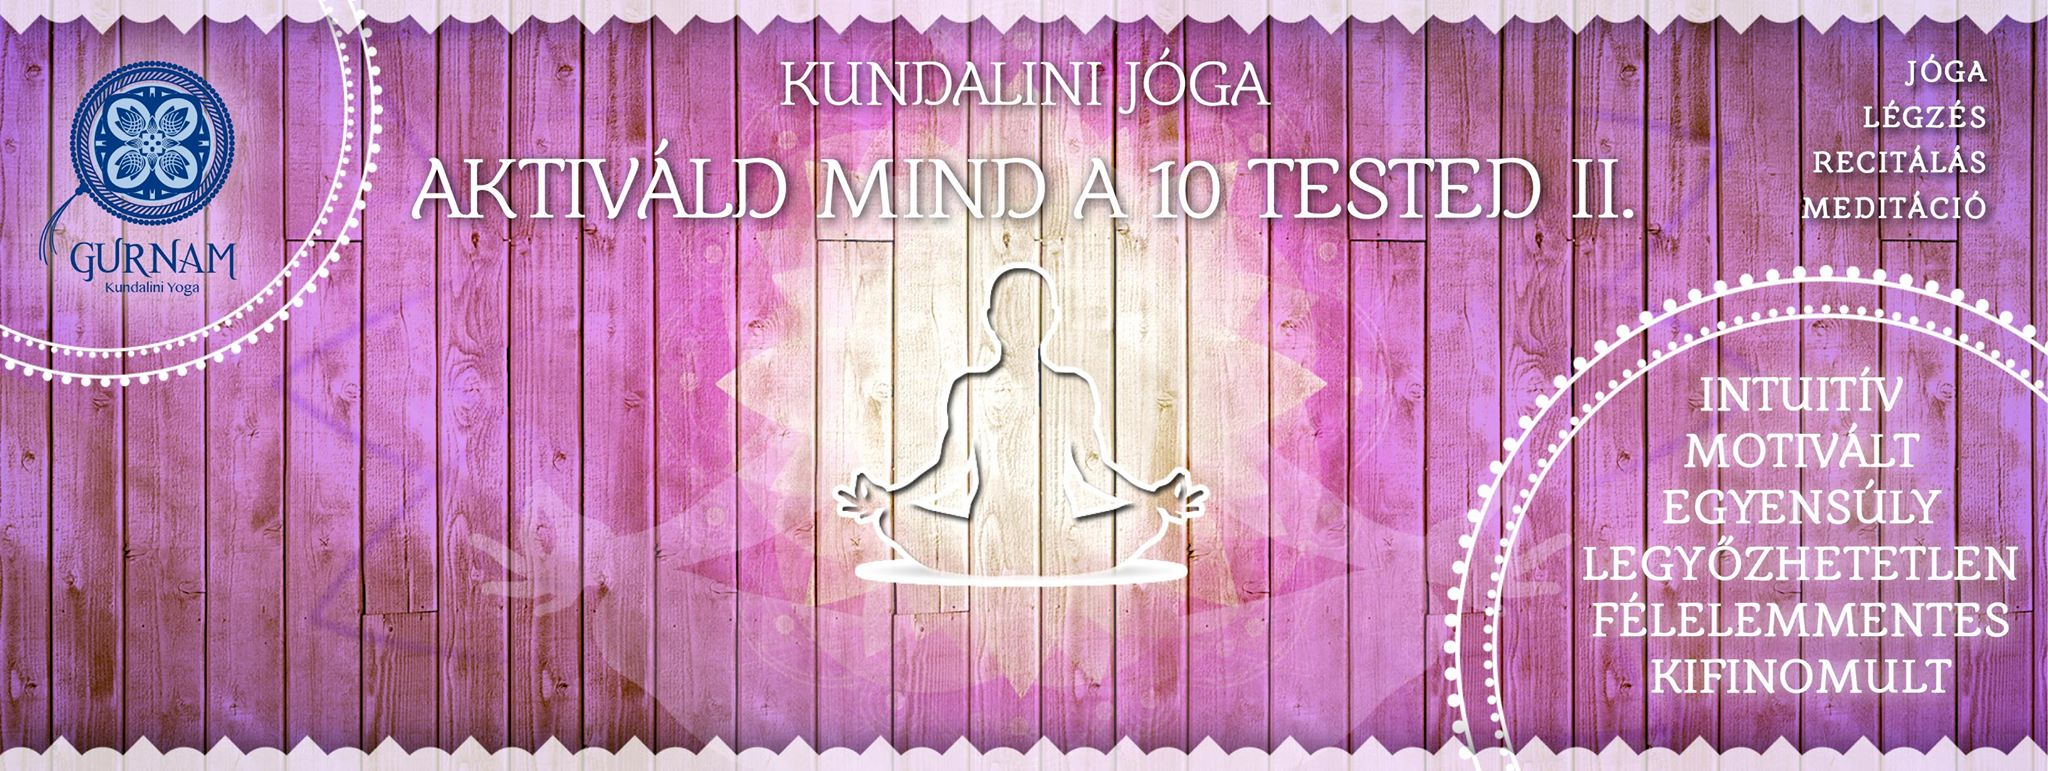 kundalini jóga workshop